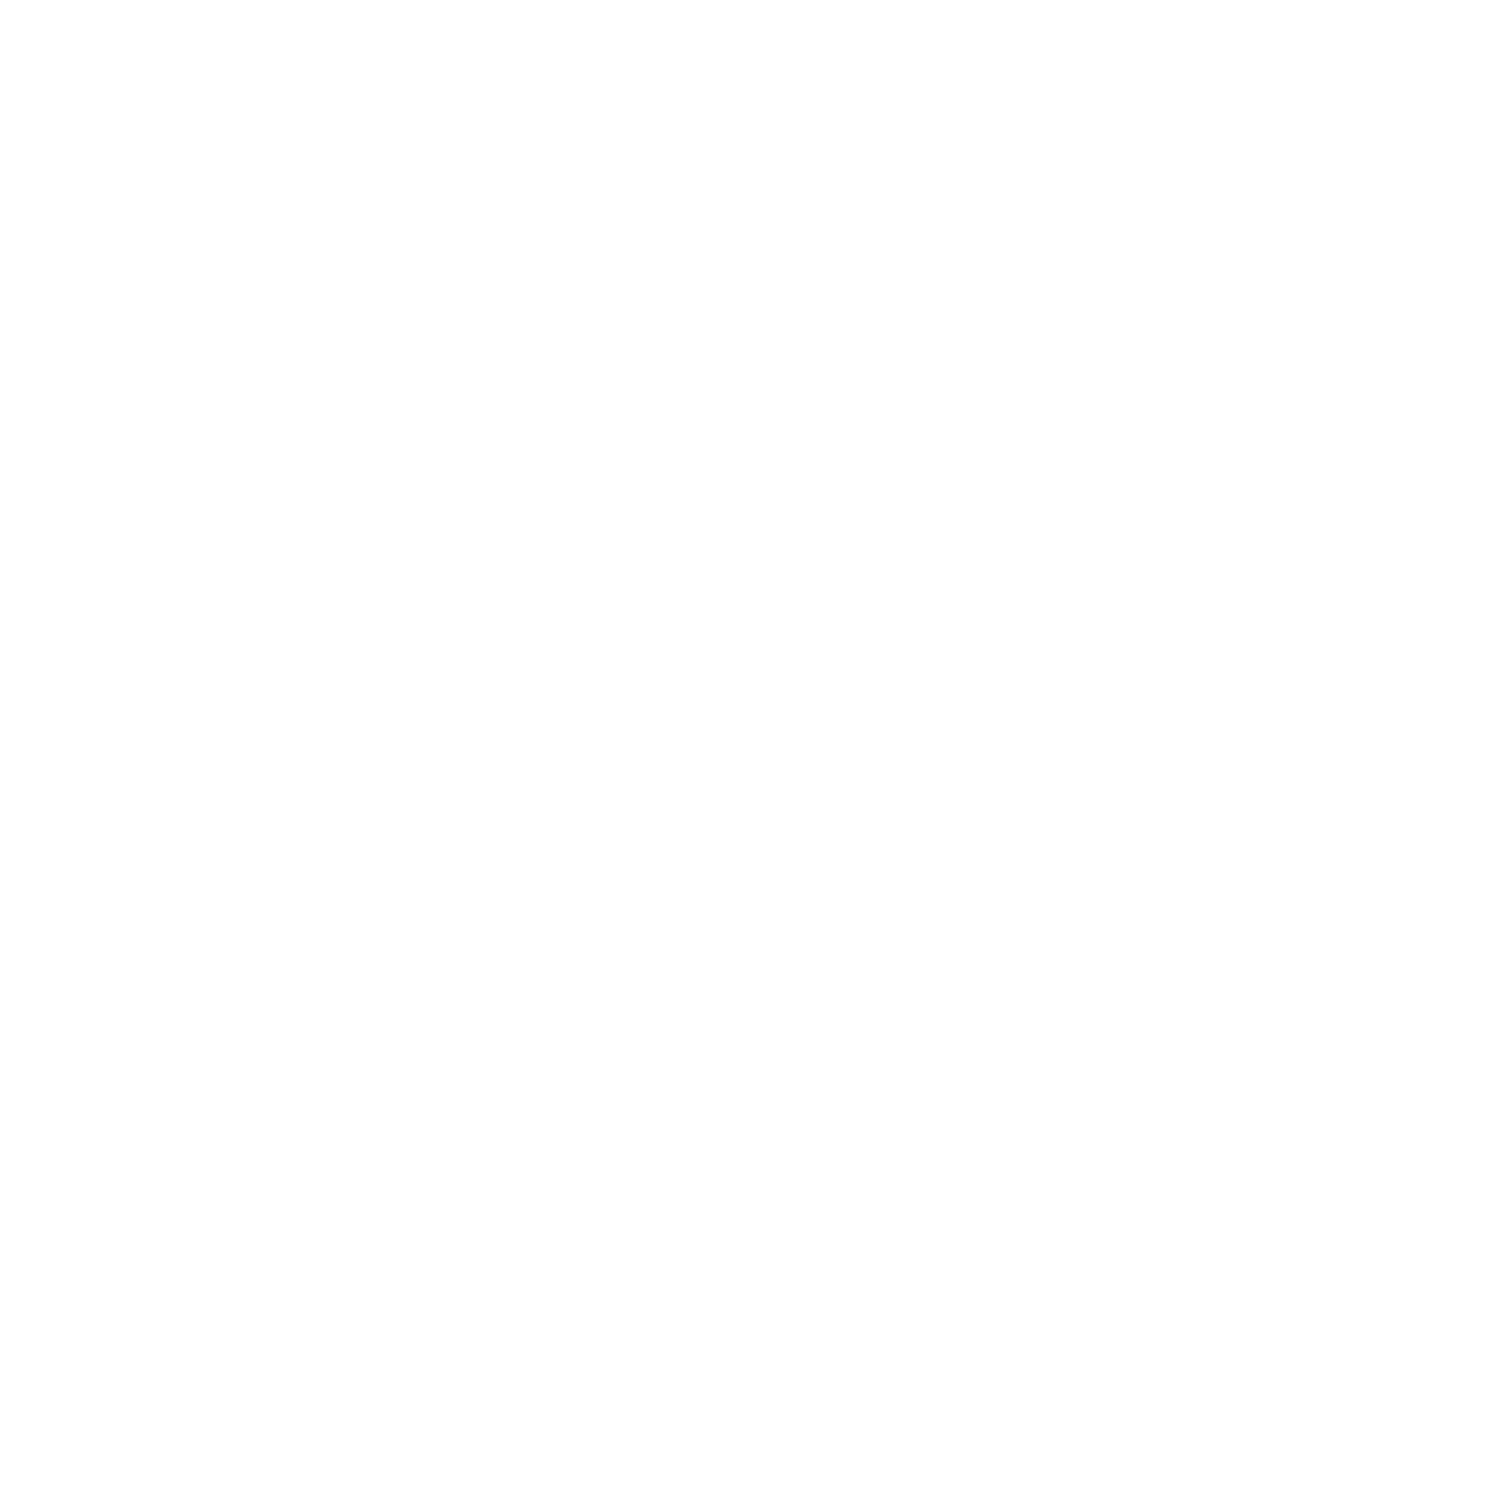 Amanda Jae Photography